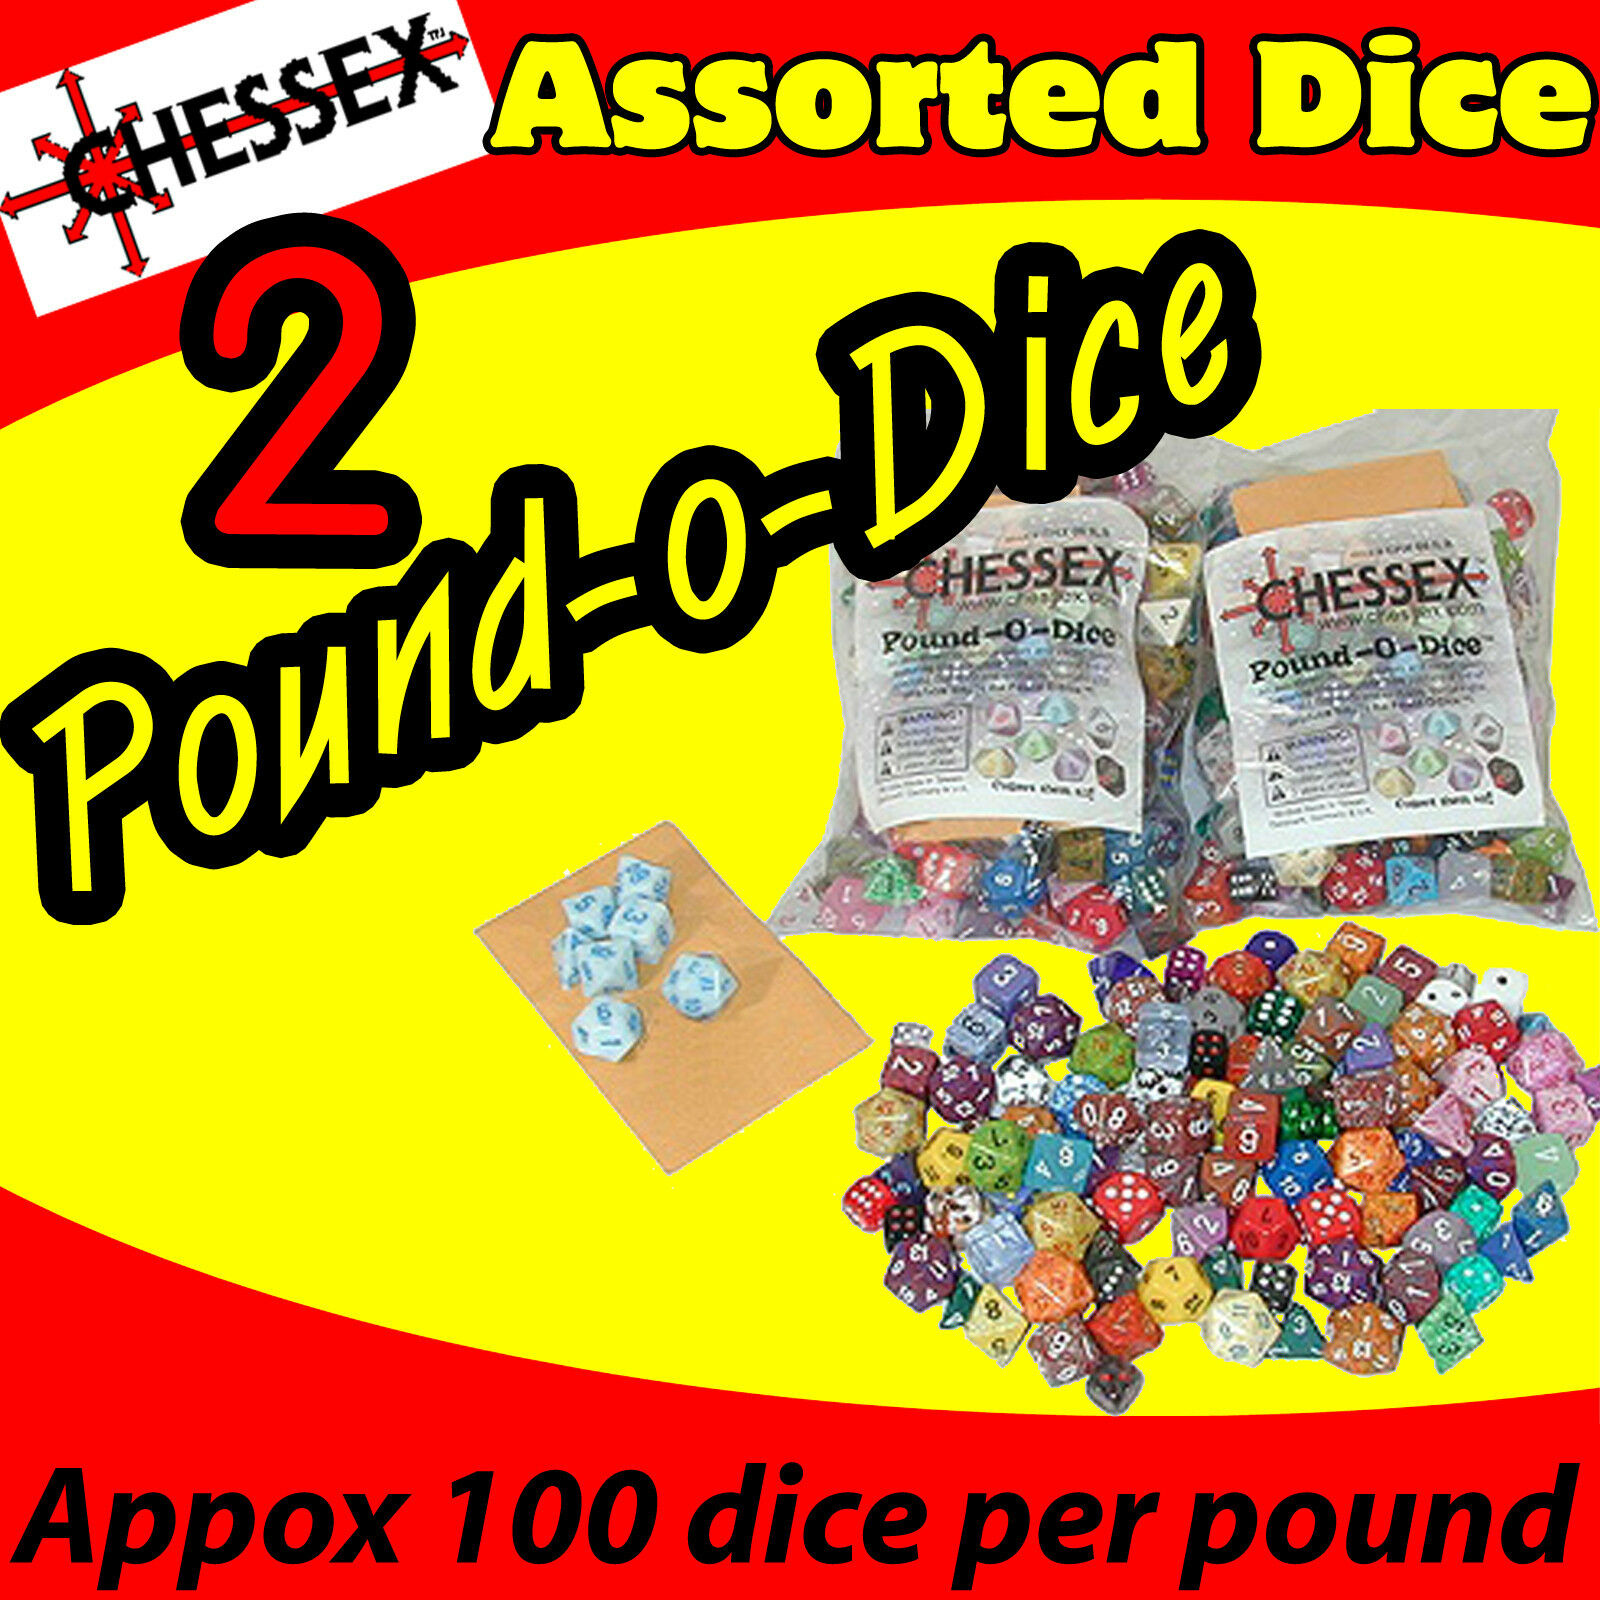 (2) POUND OF DICE BAG CHESSEX GAME ASSORTED AD&D AD&D AD&D ROLE PLAYING COLLECT CHX001LB-2 c71b52